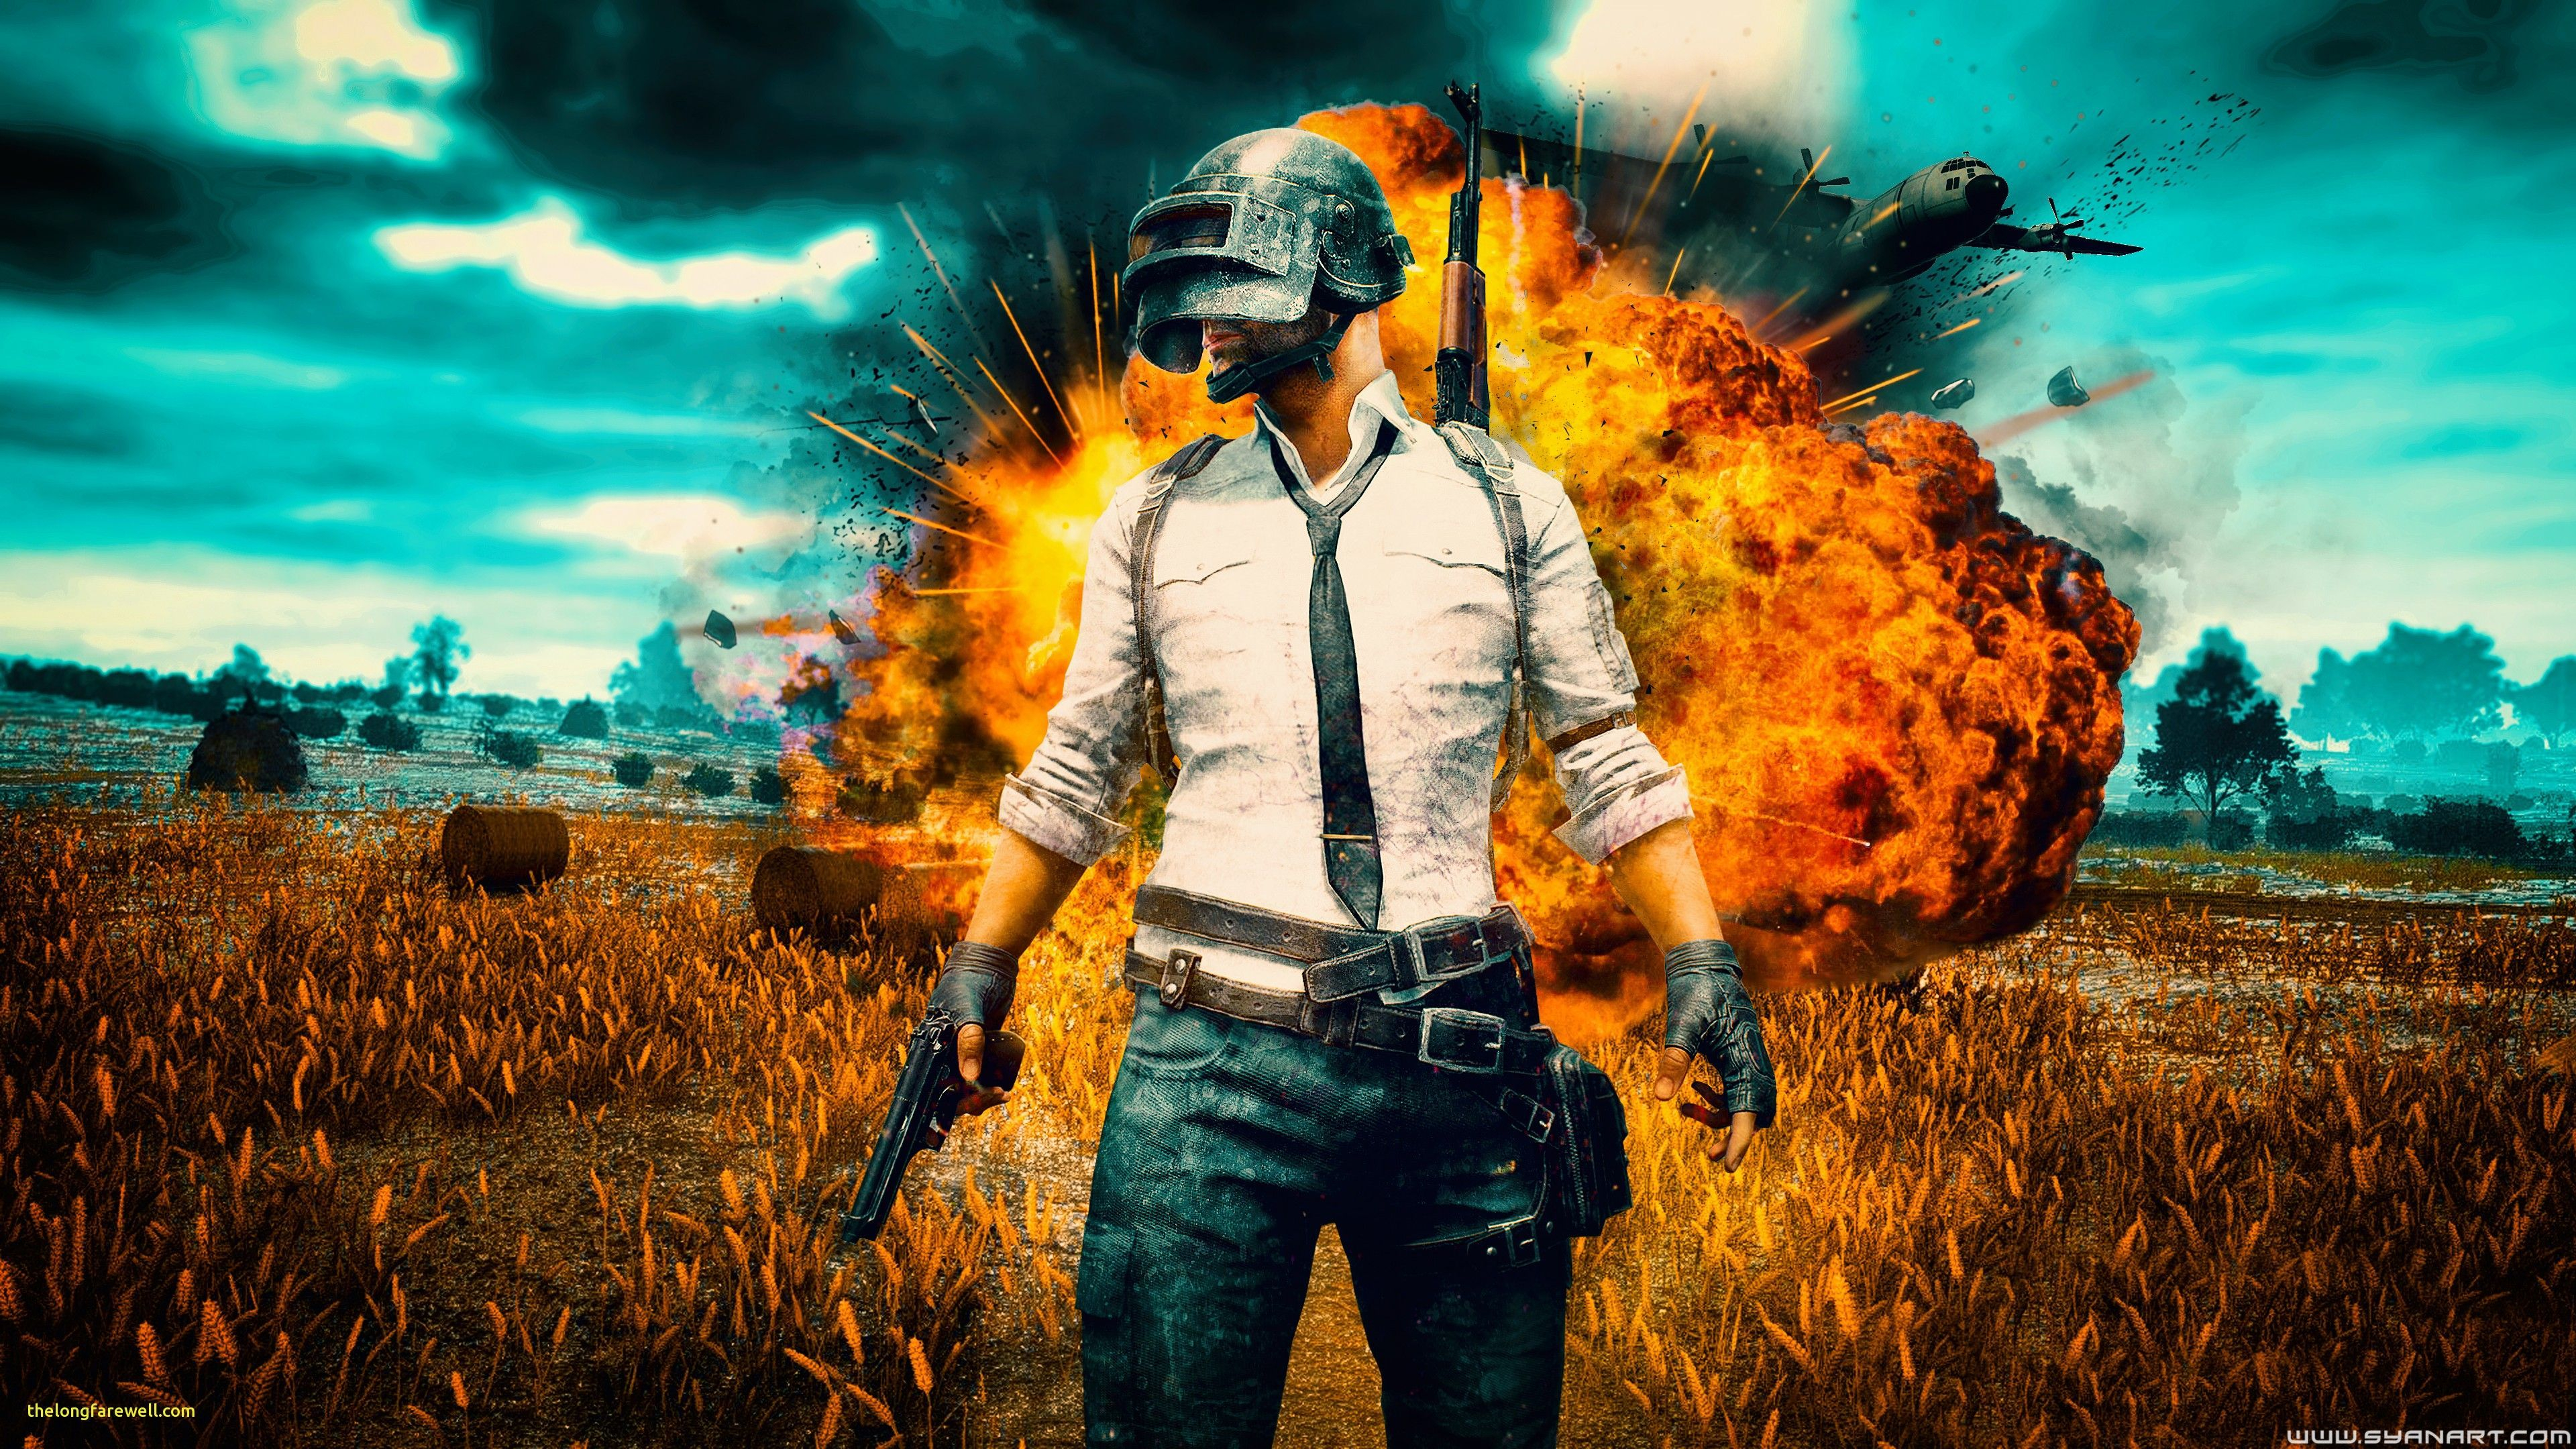 Pubg Helmet Guy With Girls And Guns 4k Hd Games 4k: Pubg Girl With Gun 5k Pubg Wallpapers Playerunknowns